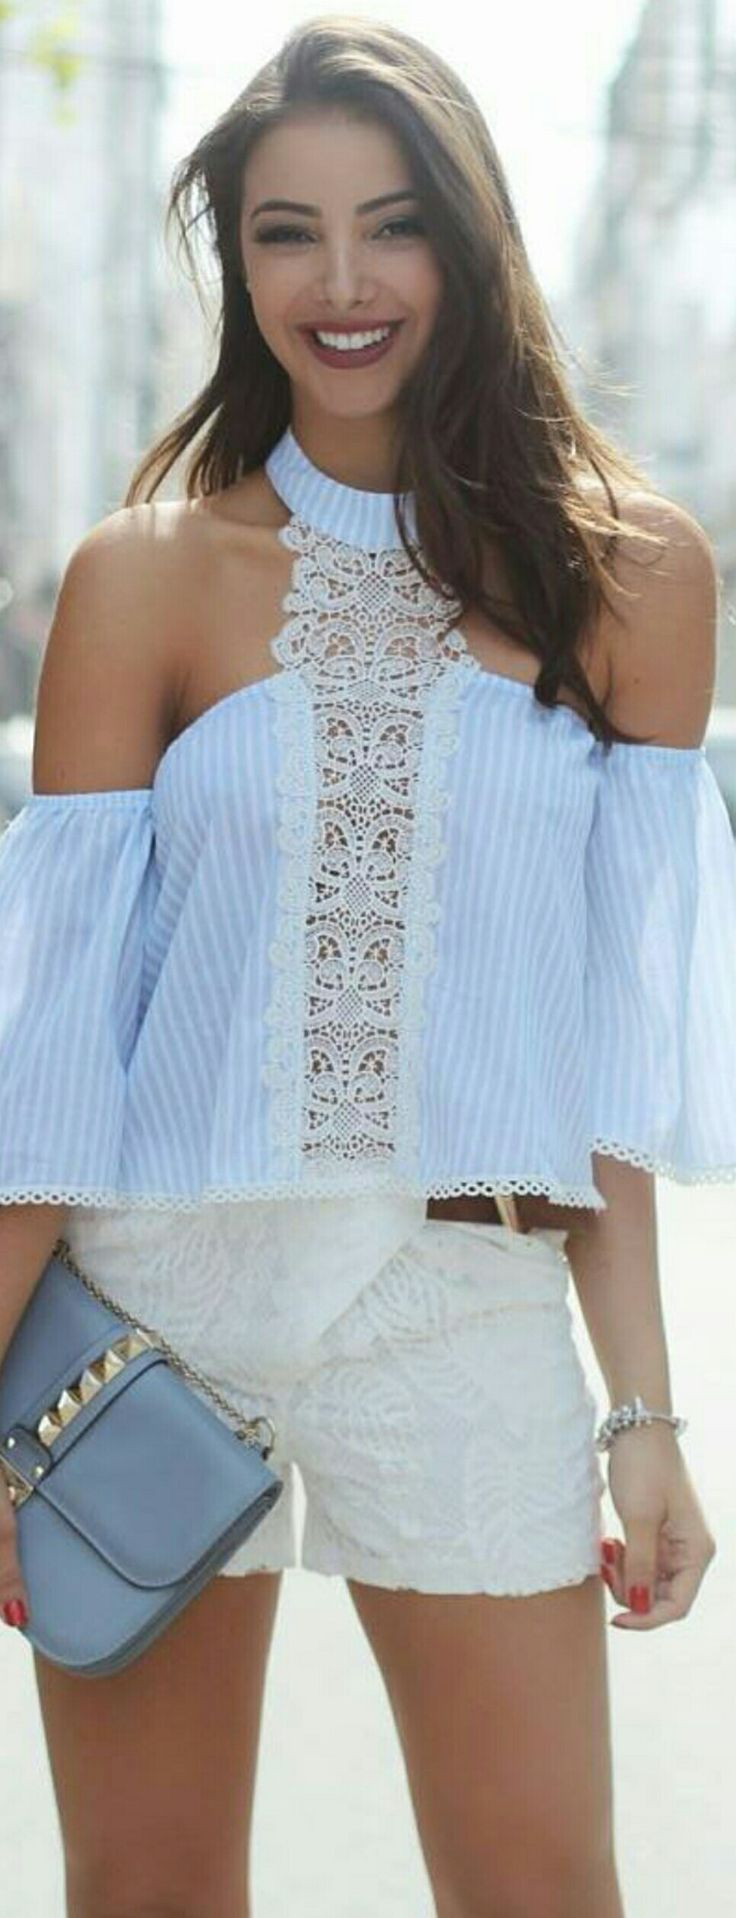 Find More at => http://feedproxy.google.com/~r/amazingoutfits/~3/l-VbiQqdXi8/AmazingOutfits.page